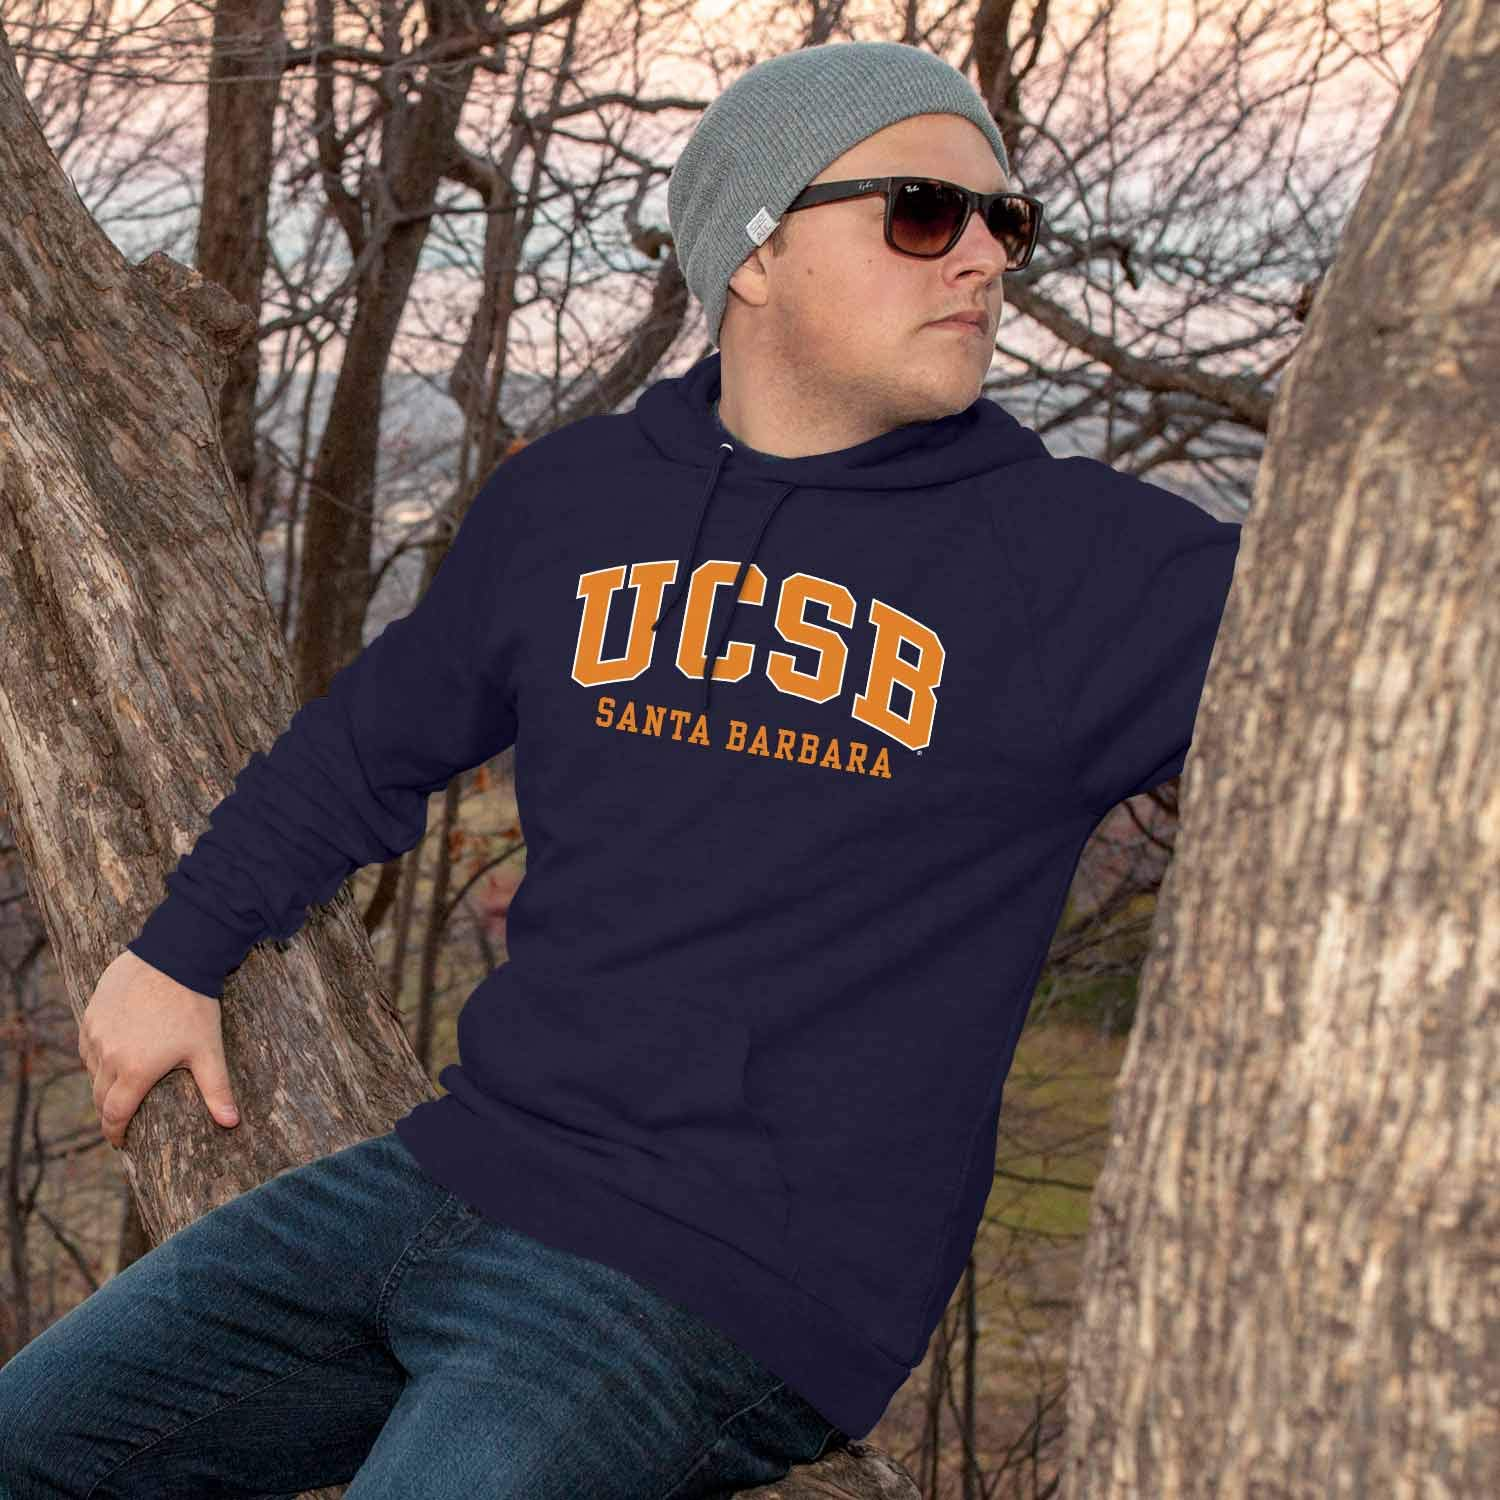 Buy Ucsb Now!